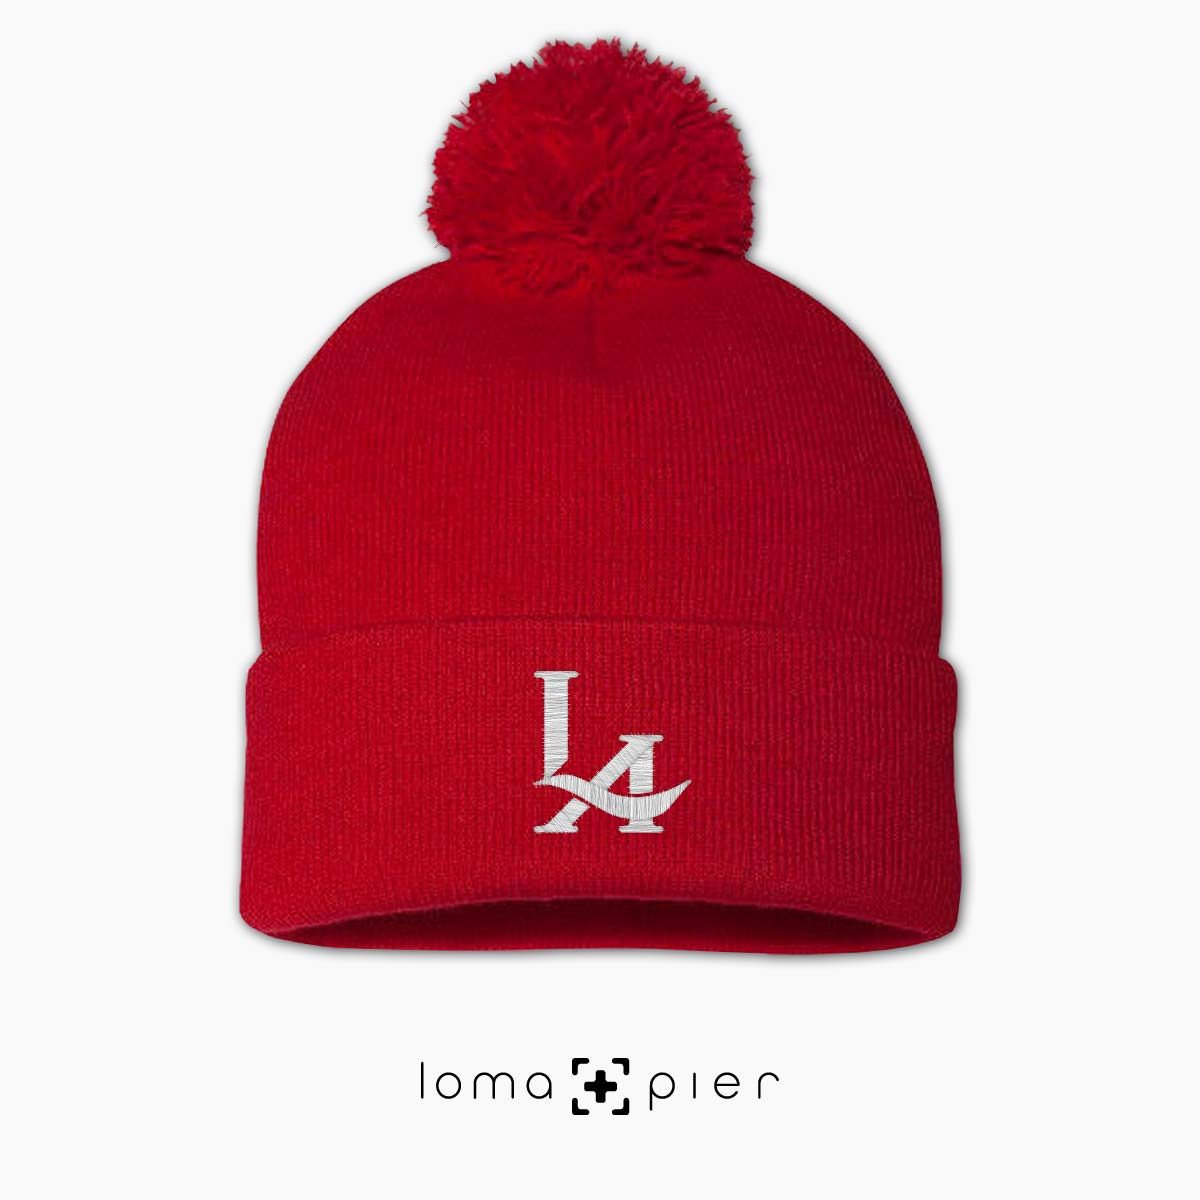 los angeles LA LOGO icon embroidered on a red pom pom beanie by loma+pier hat store